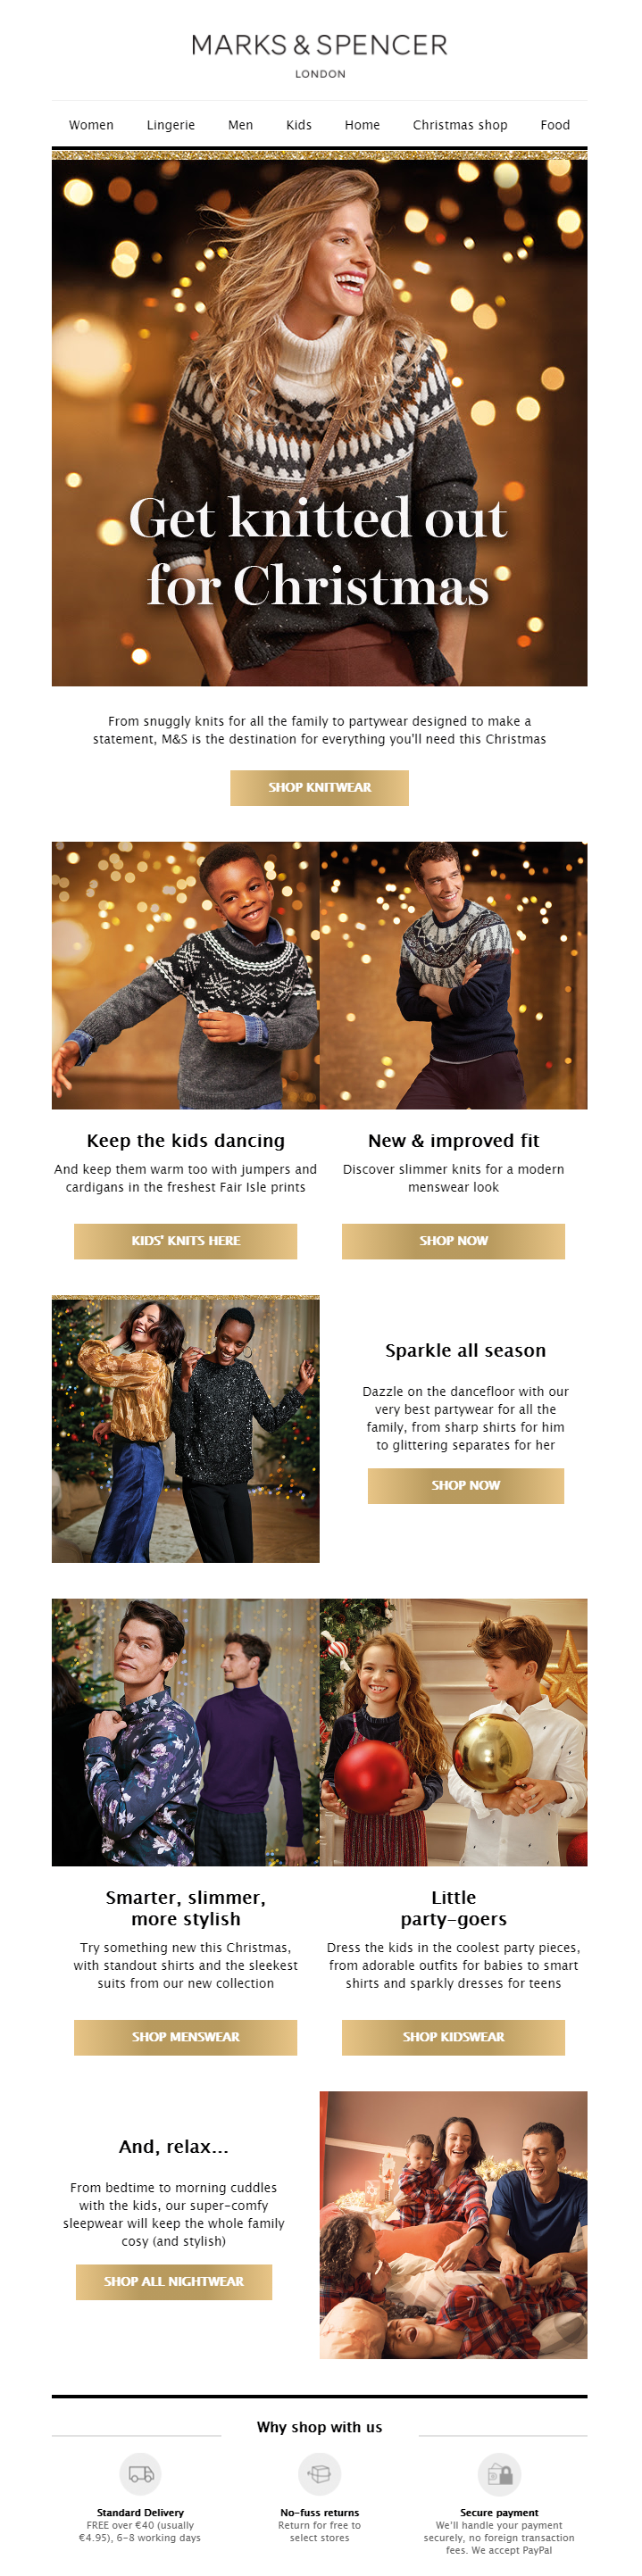 mark and spencers pre Christmas campaign example